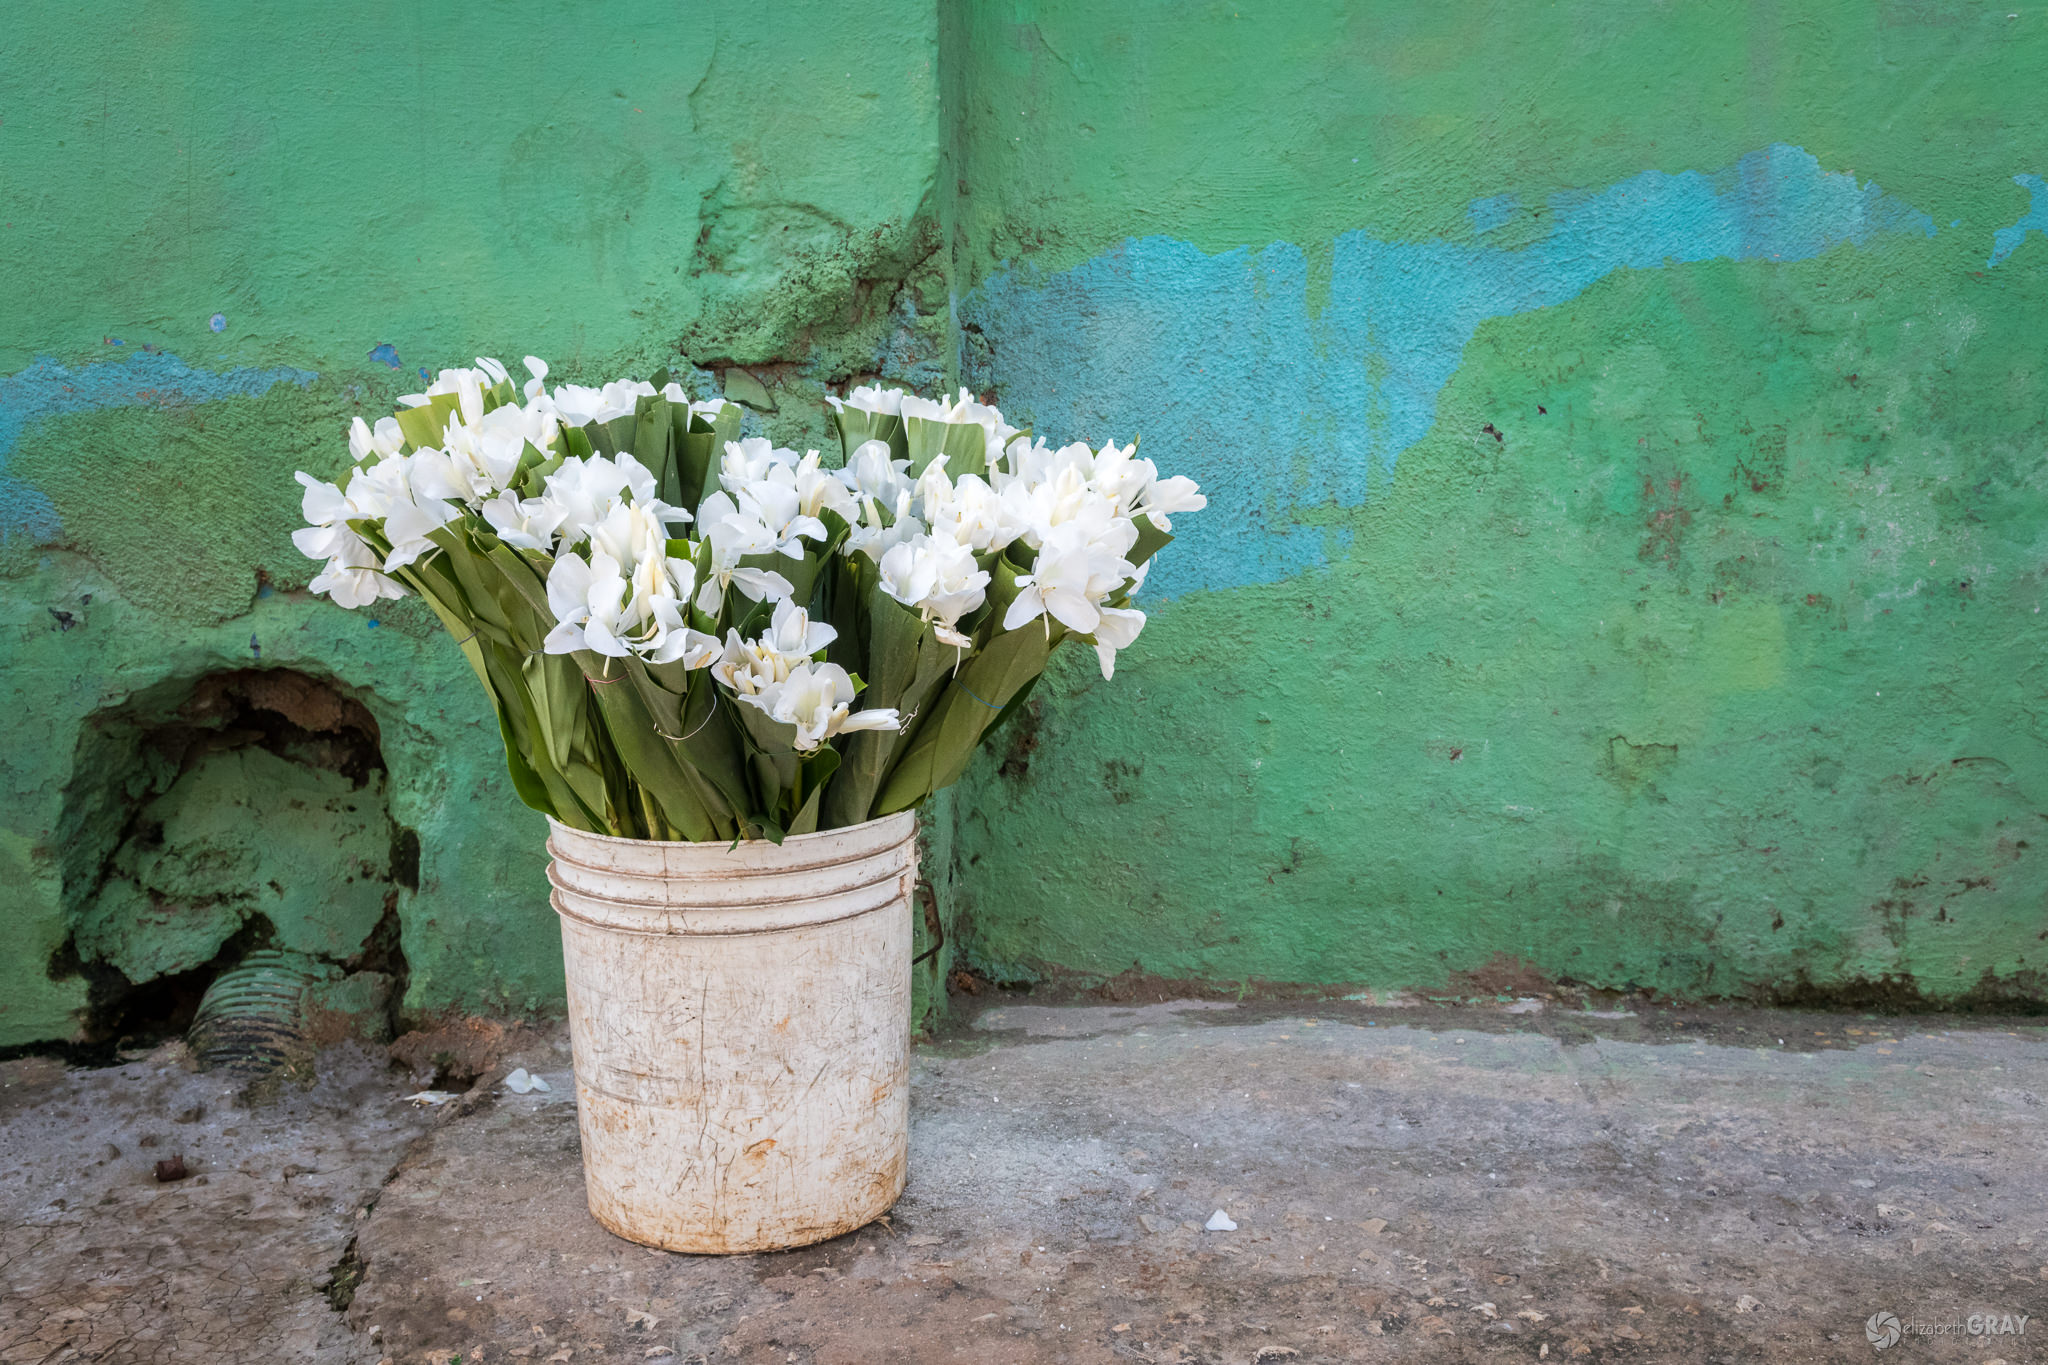 Pail of Flowers